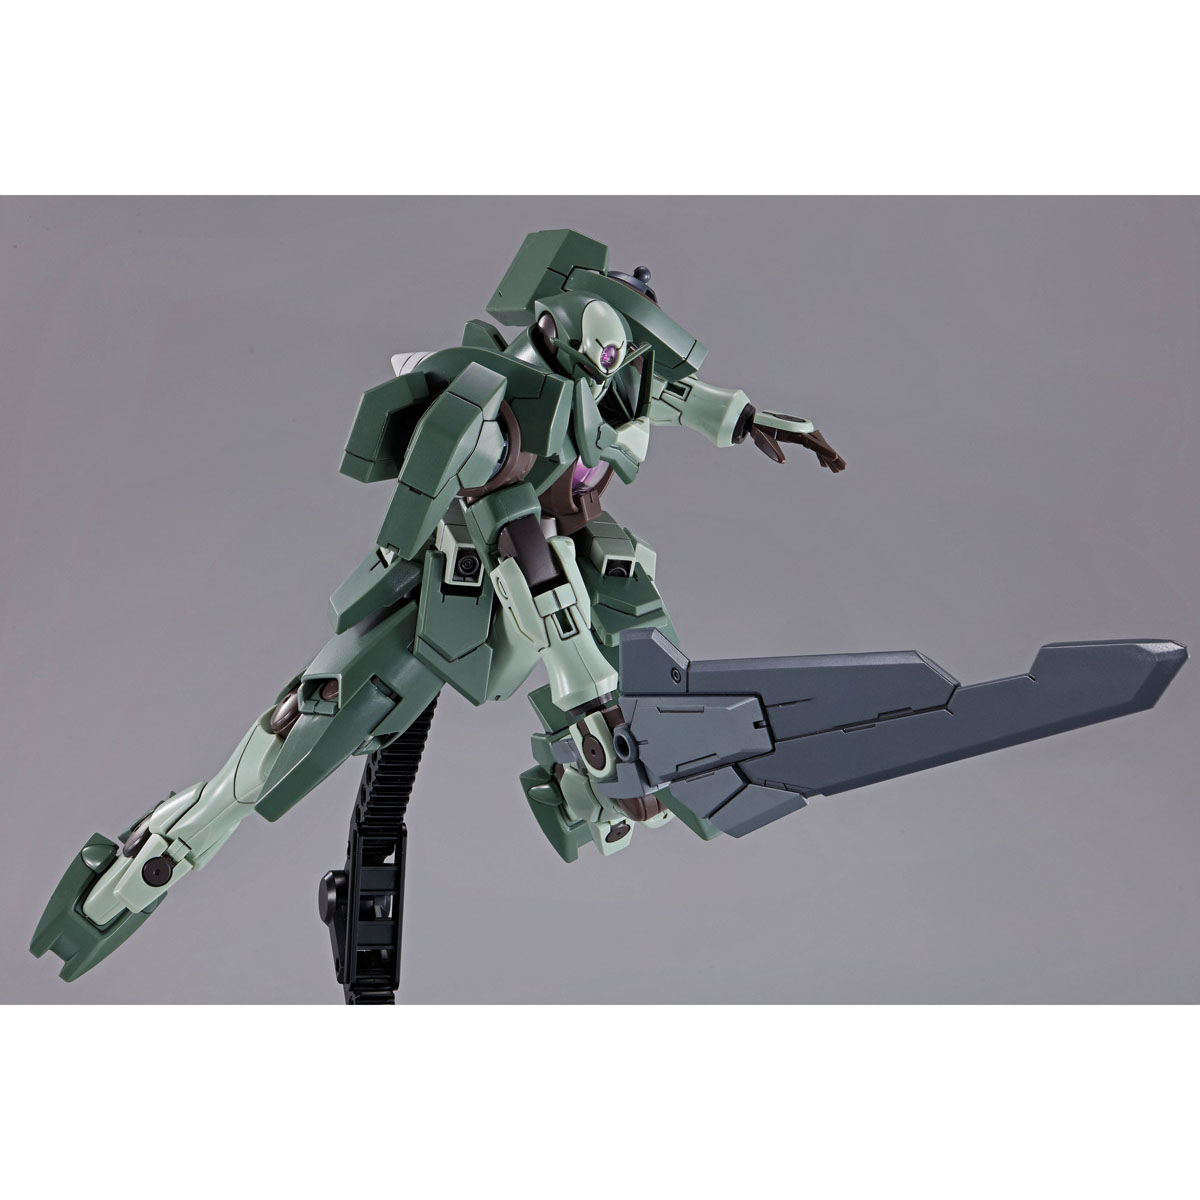 HG 1/144 GN-X Ⅳ (Mass Production Type)